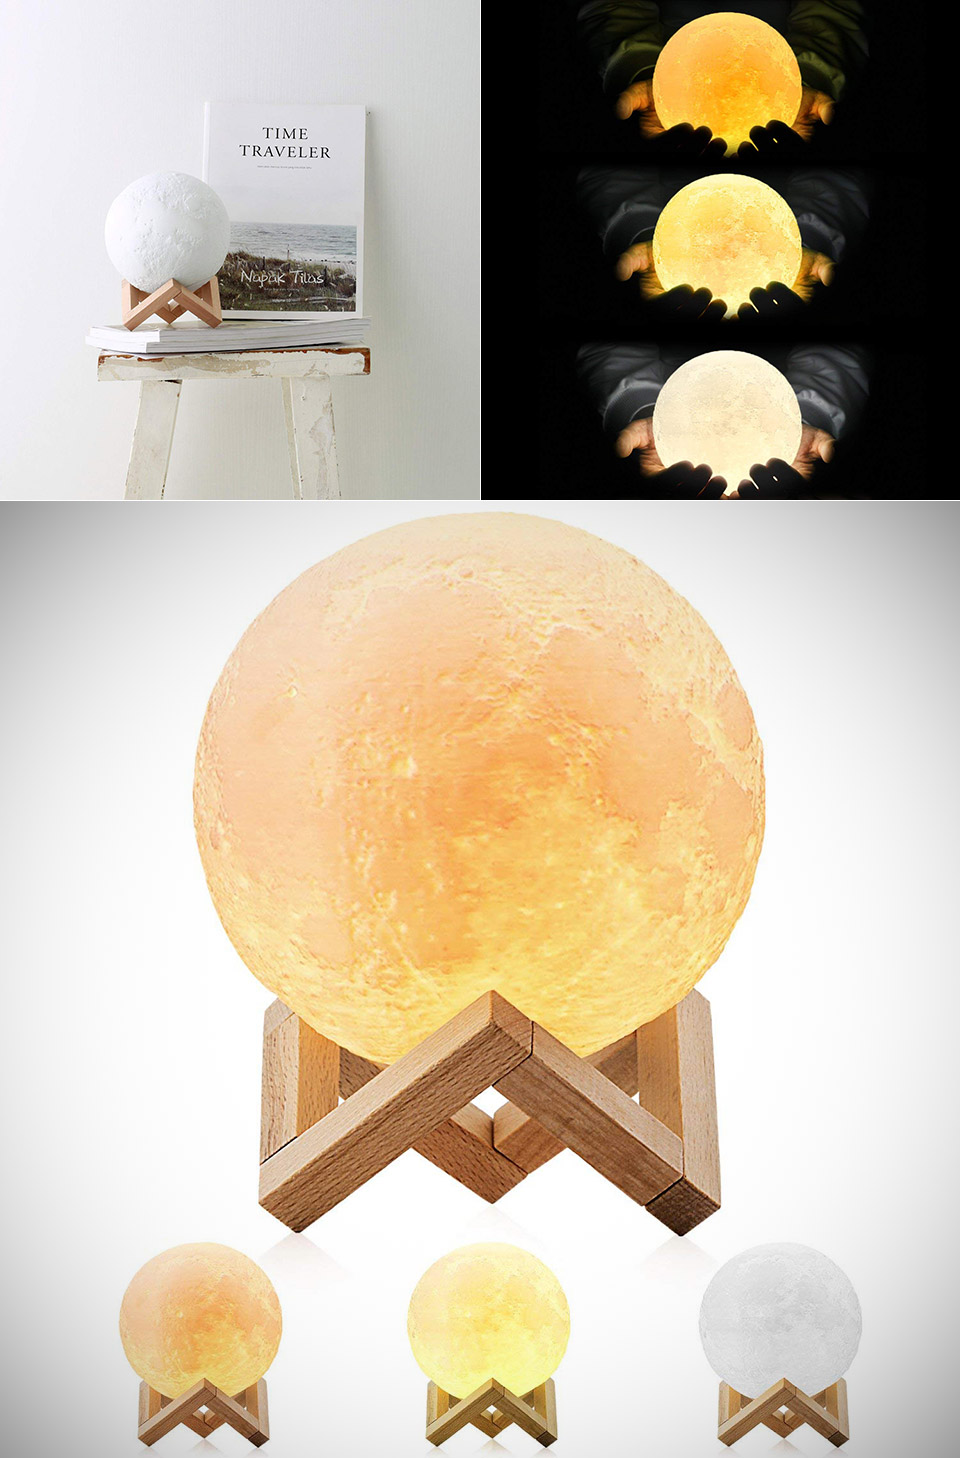 3D-Printed Moon Lamp